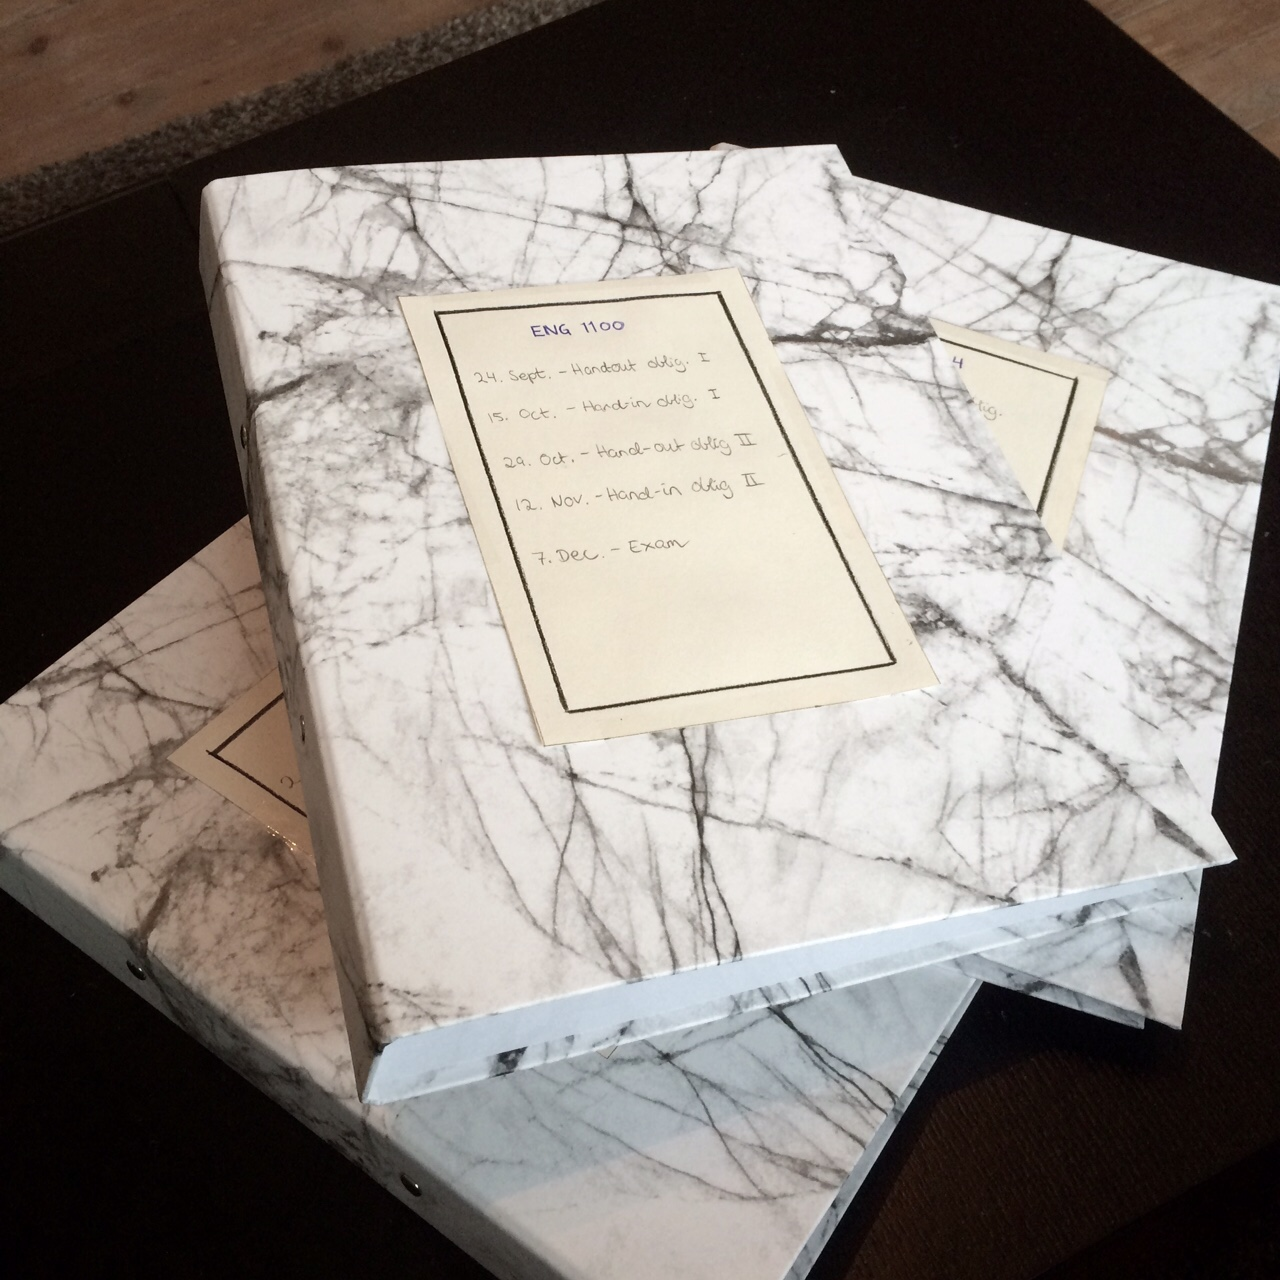 I'm reusing last years literature folders, so just imagine these same folders, but with a new index glued to the front.